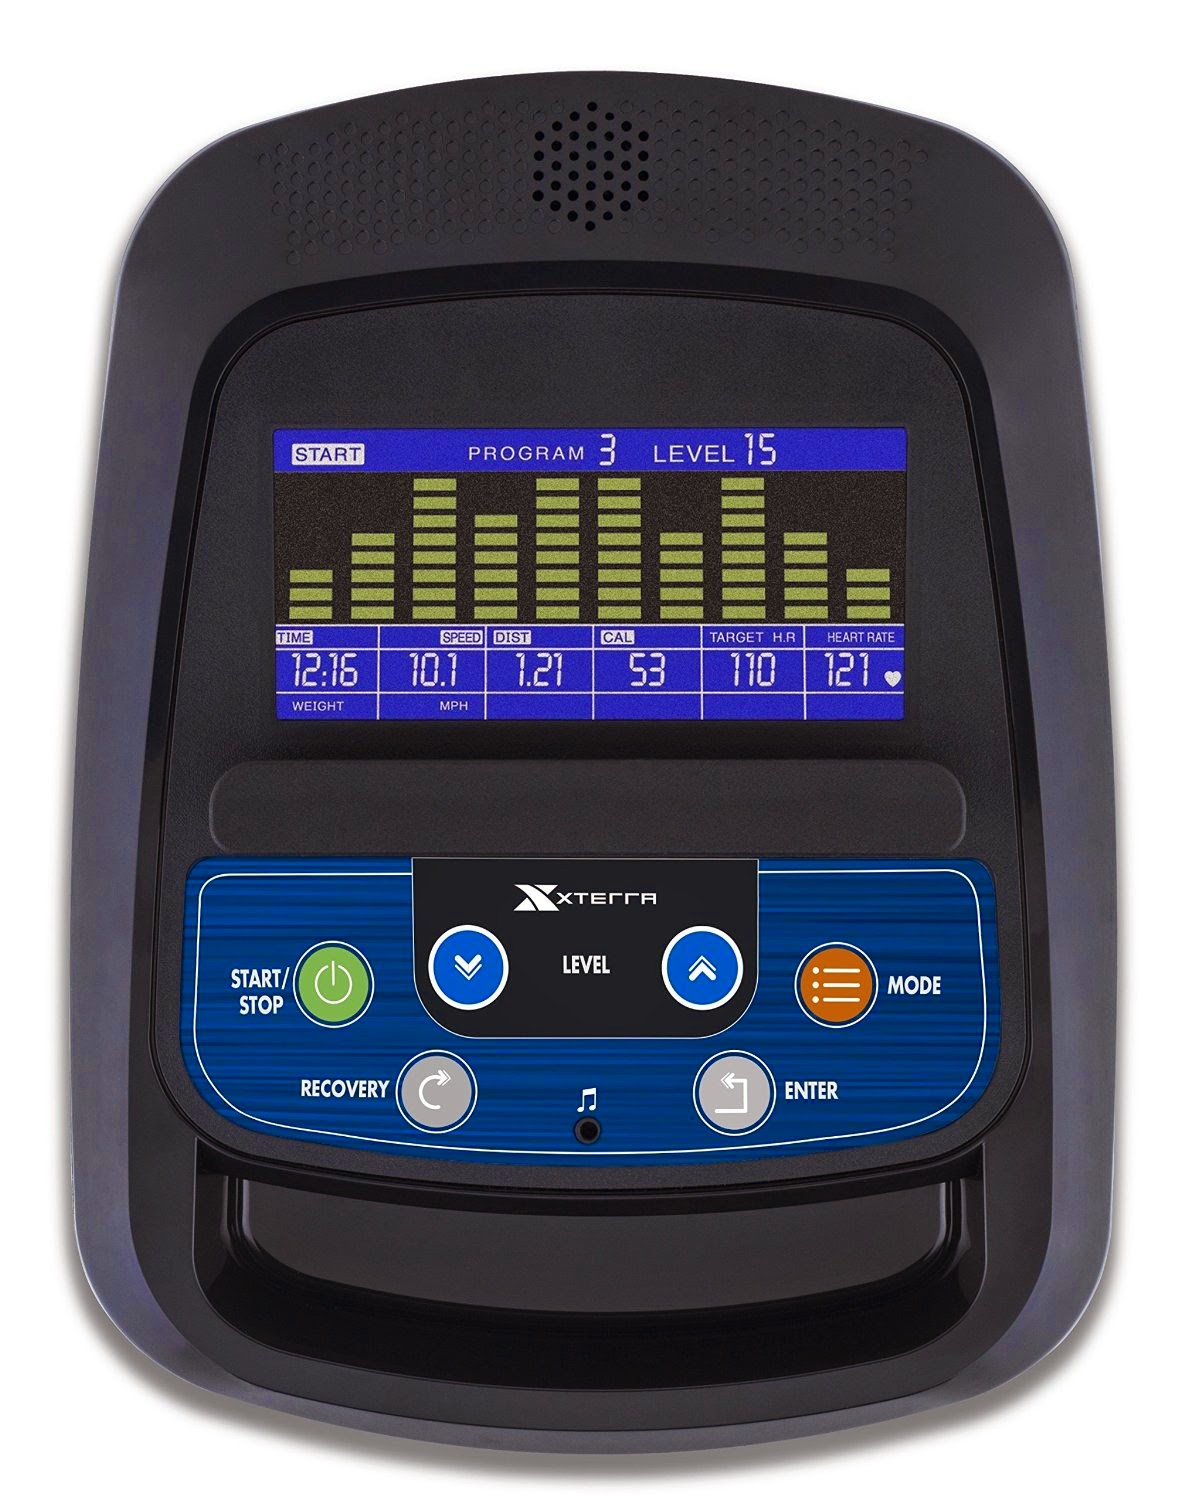 Xterra Xterra FS3.5 blue and yellow backlit LCD console display, shows workout stats including time, distance, speed, pulse, calories, sound system with speaker and audio jack for MP3 player, media shelf